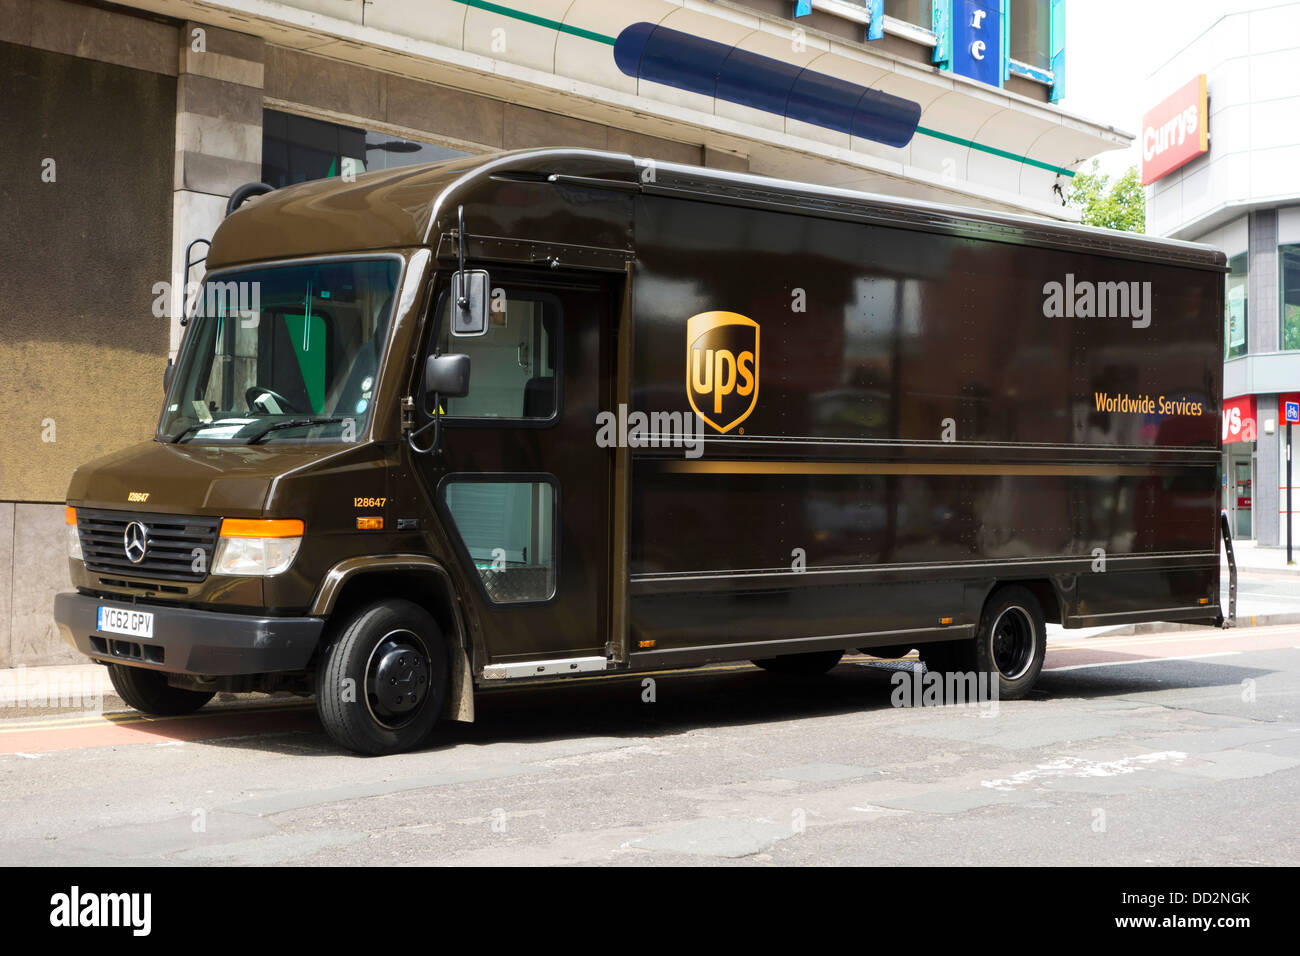 A UPS delivery truck in the U.K. - Stock Image